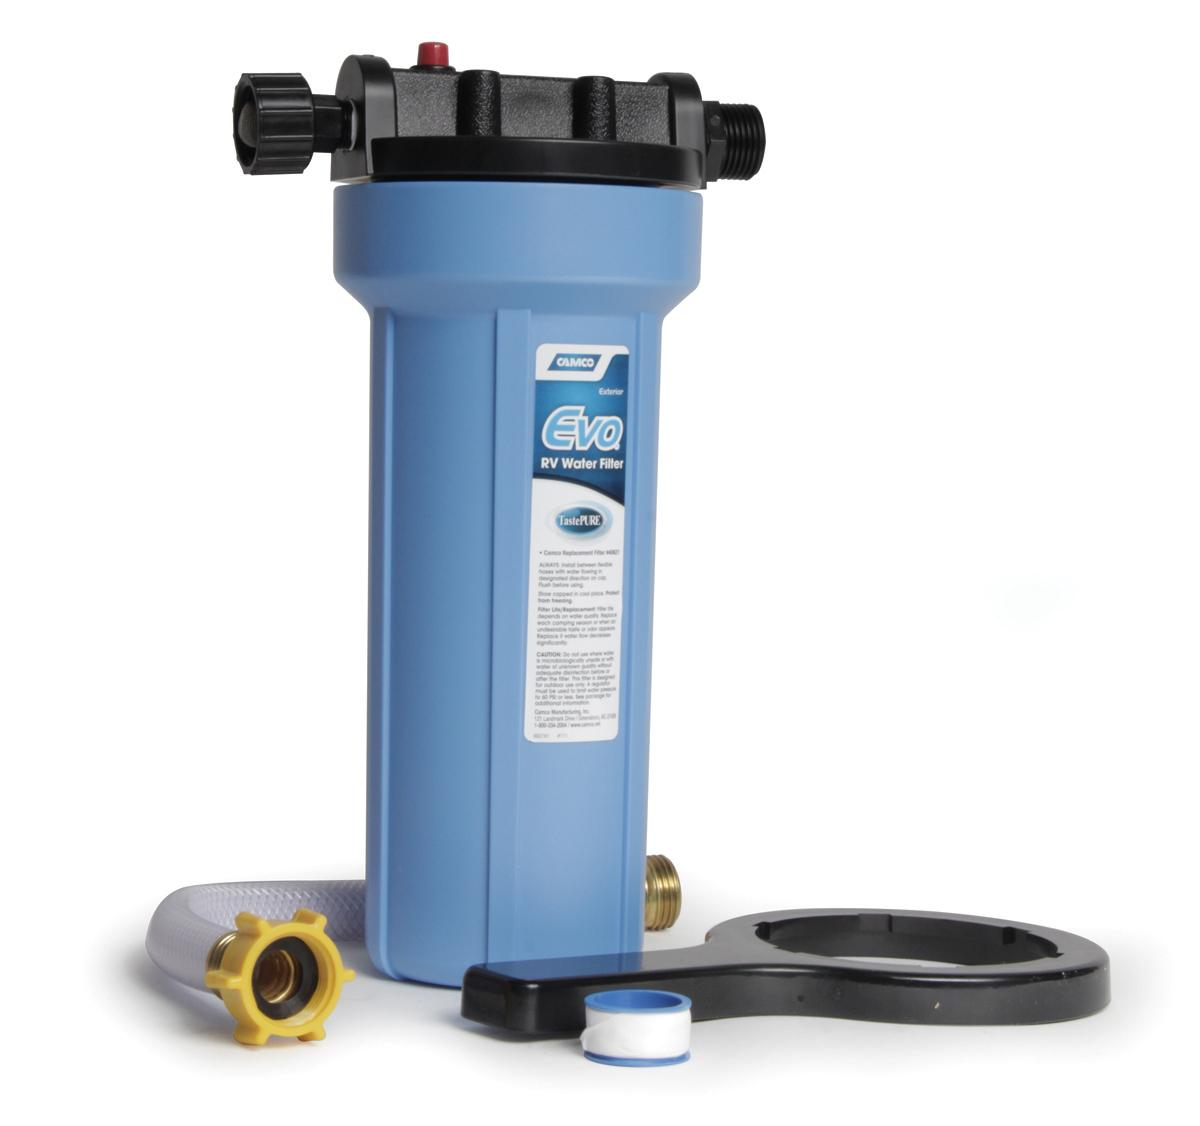 Waterfilter Amazoncom Camco 40631 Evo Premium Water Filter Automotive